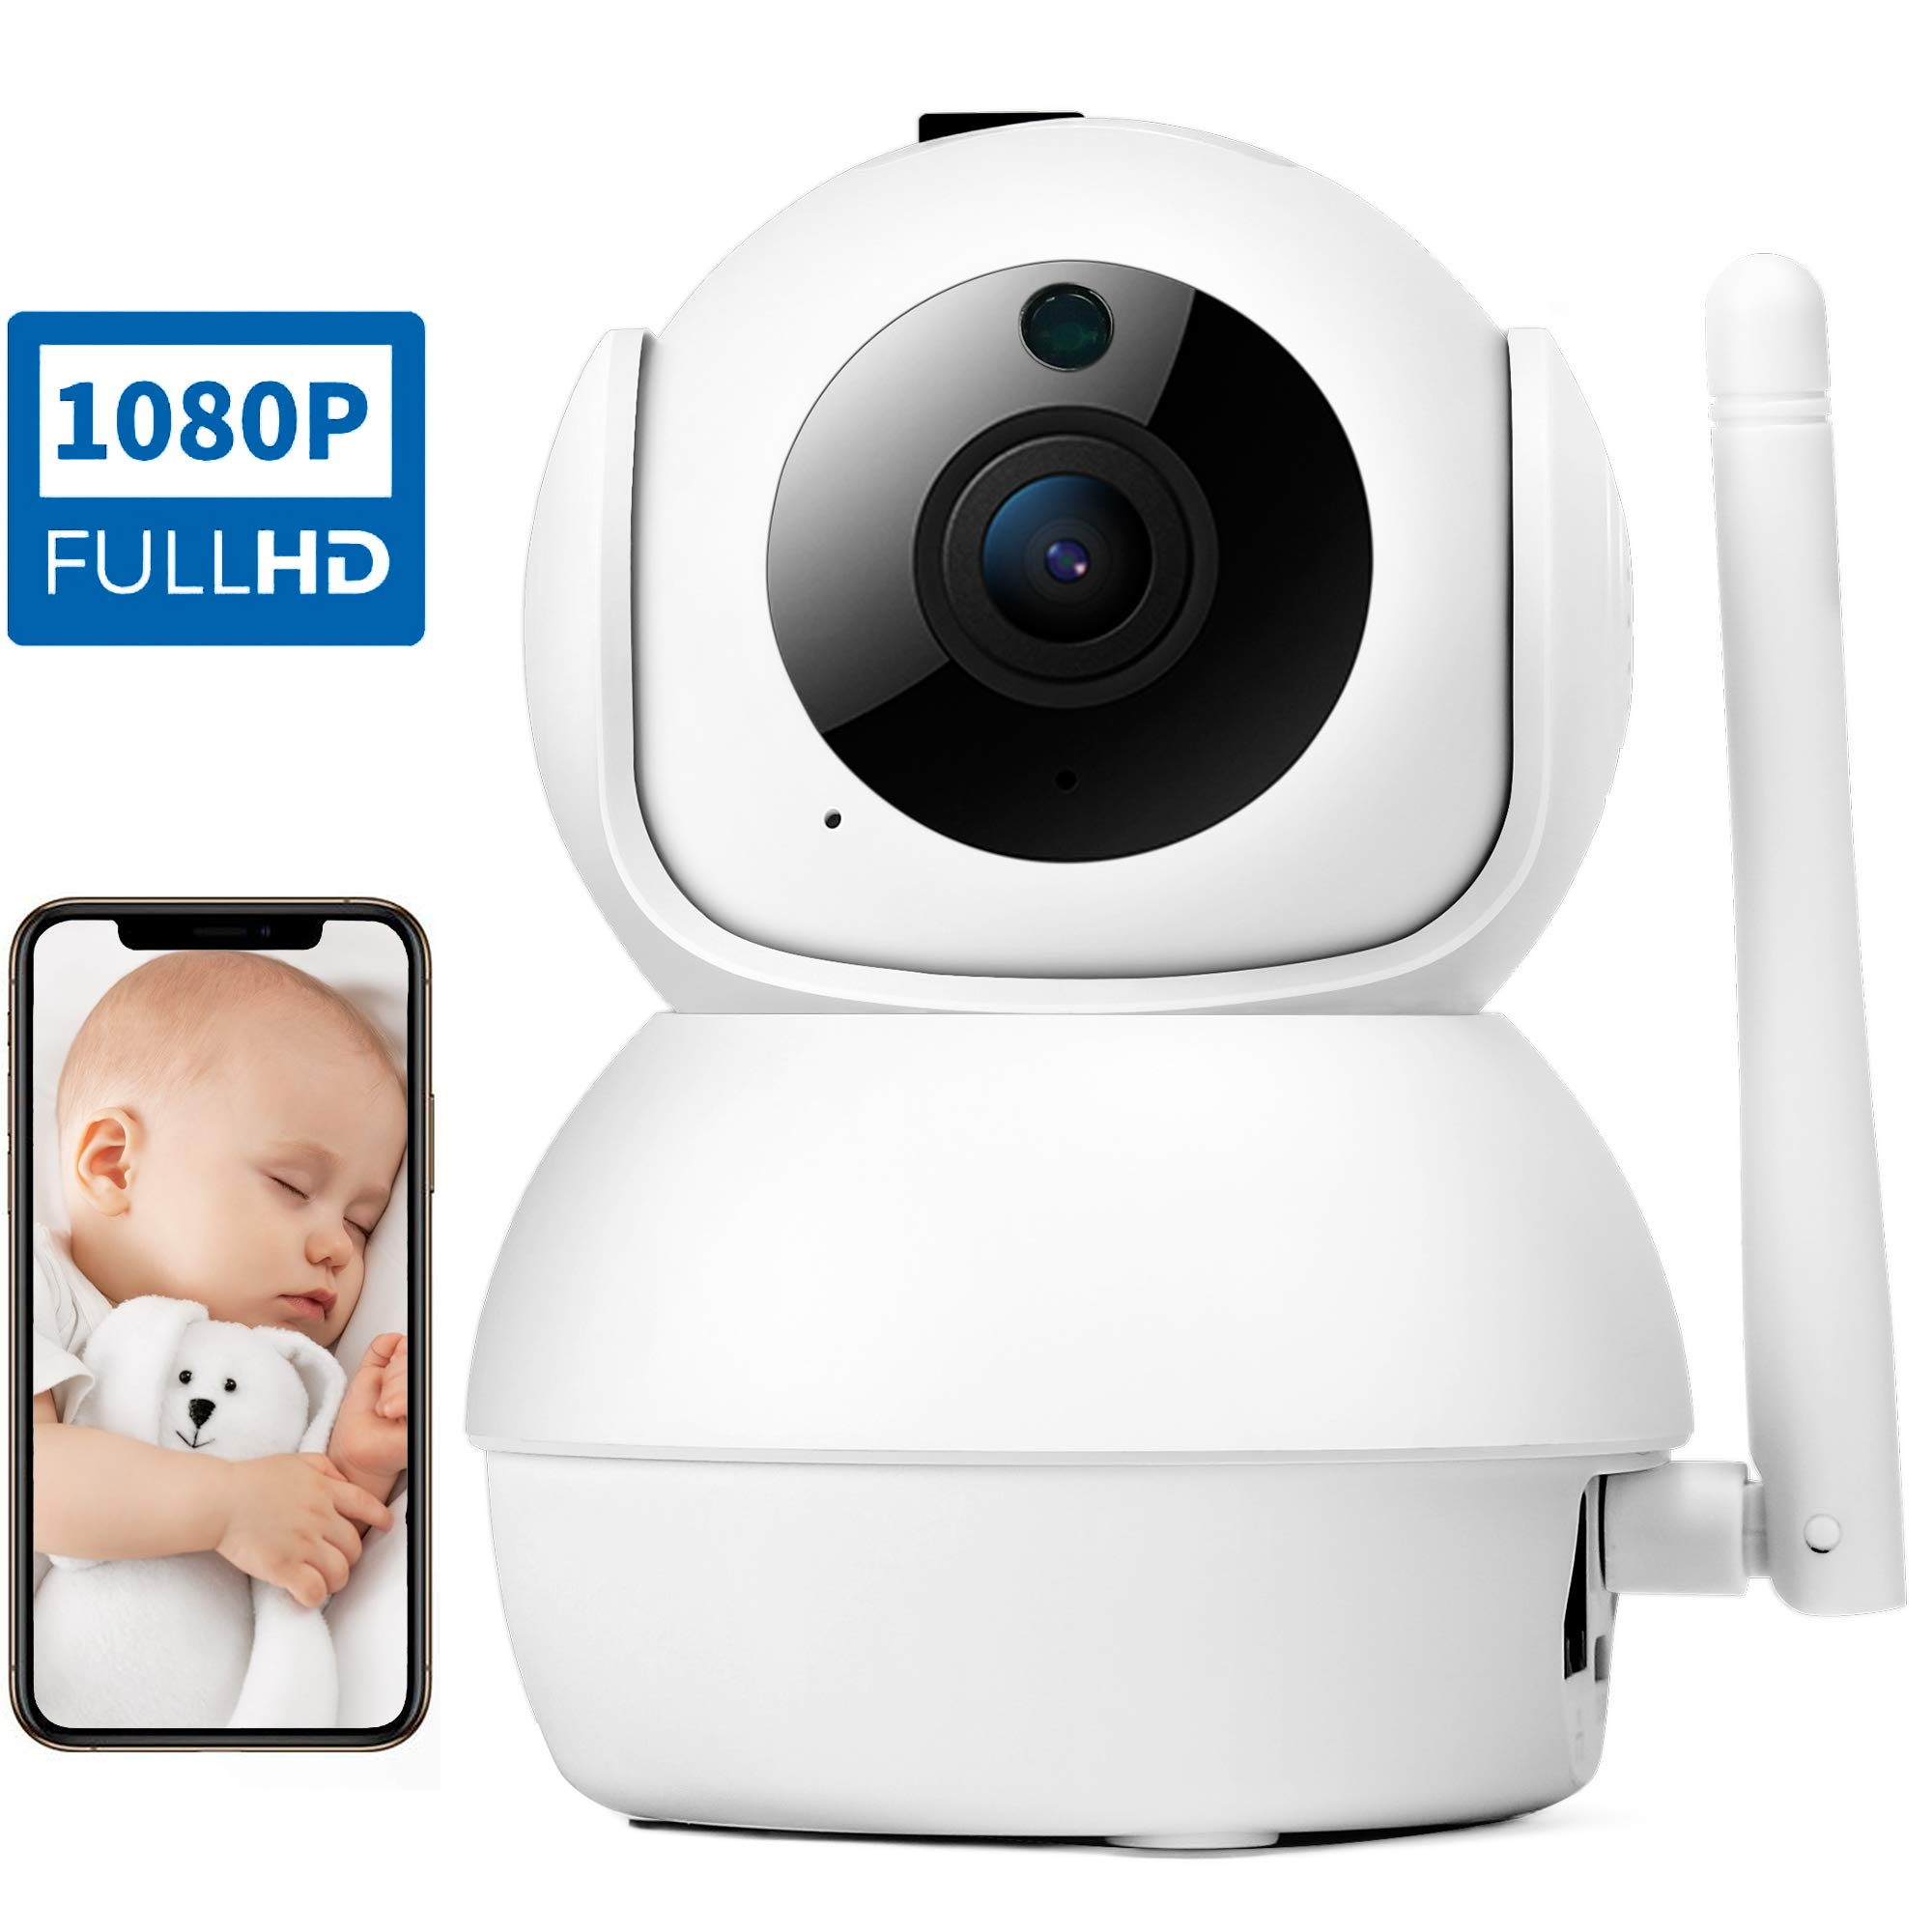 SDOM Baby Monitor Wireless Security Camera-1080P FHD WiFi IP Pet Camera with Two Way Audio Night Vision, Auto-Cruise, Motion Tracker, Activity Alert MicroSD Slot,Cloud Service Indoor Home Dome Camera